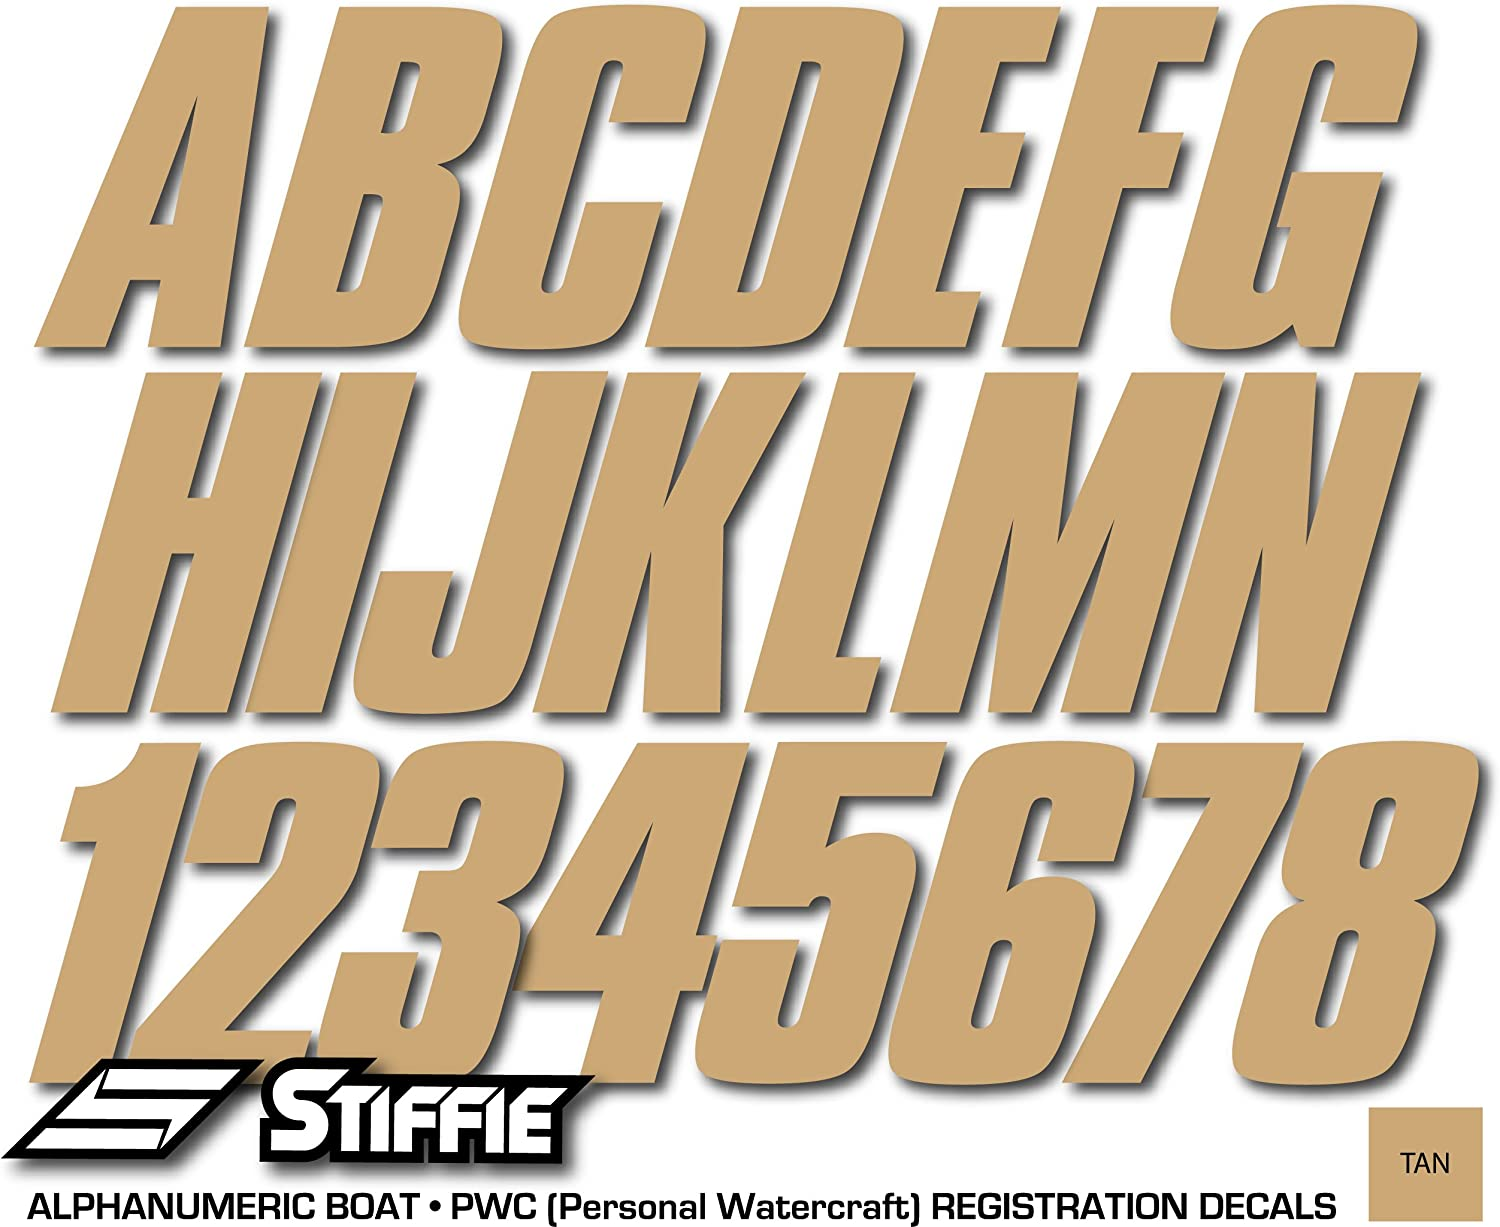 Stiffie Shift Tan 3 ID Kit Alpha-Numeric Registration Identification Numbers Stickers Decals for Boats /& Personal Watercraft